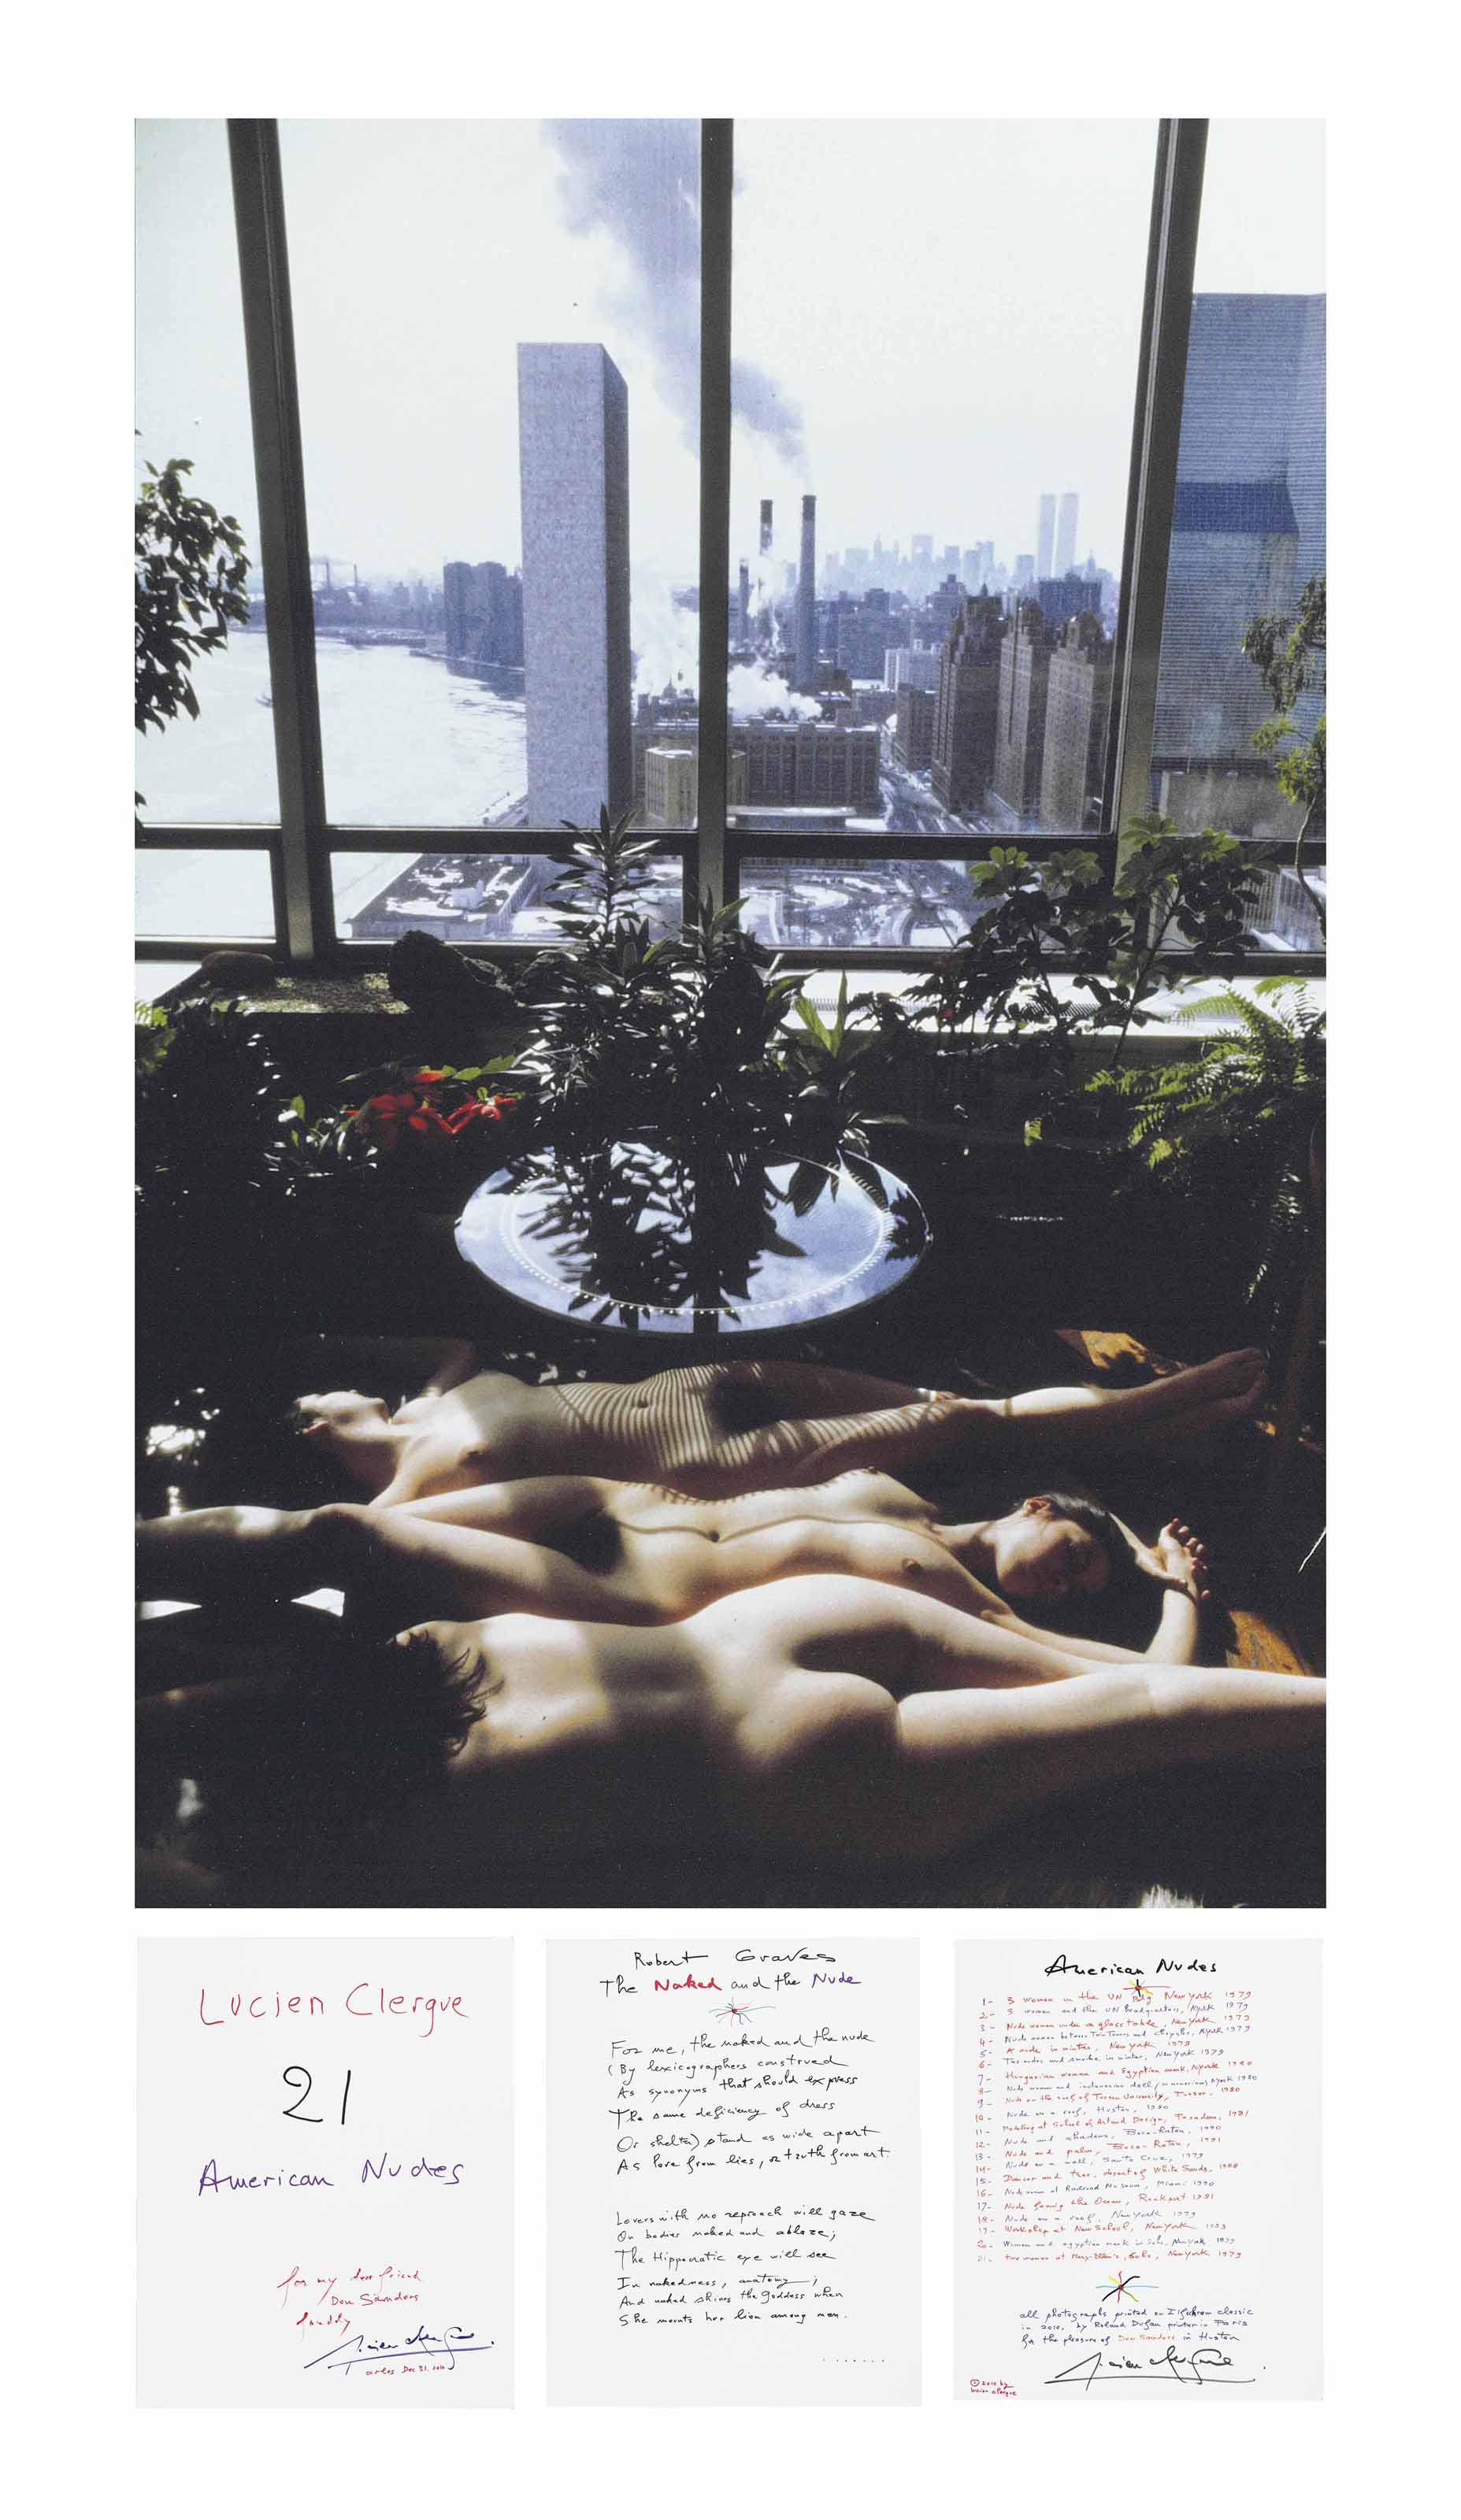 '21 American Nudes: 1979-1991'